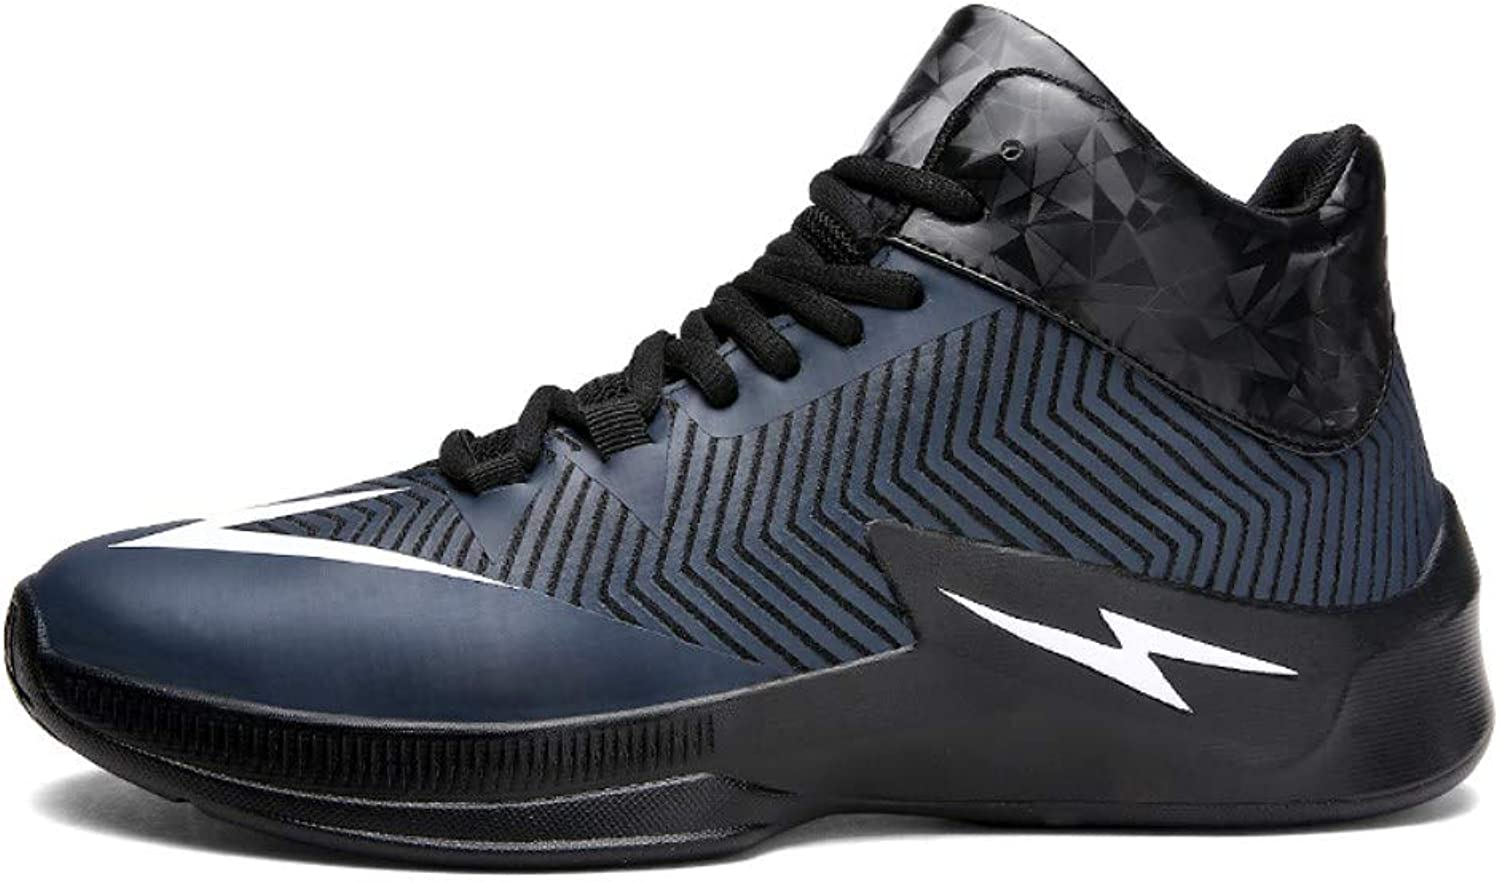 Maylen Hughes Men's shoes, Autumn Sneakers, Fashion Shock Absorbing Basketball shoes, Non-Slip Wearable Casual shoes